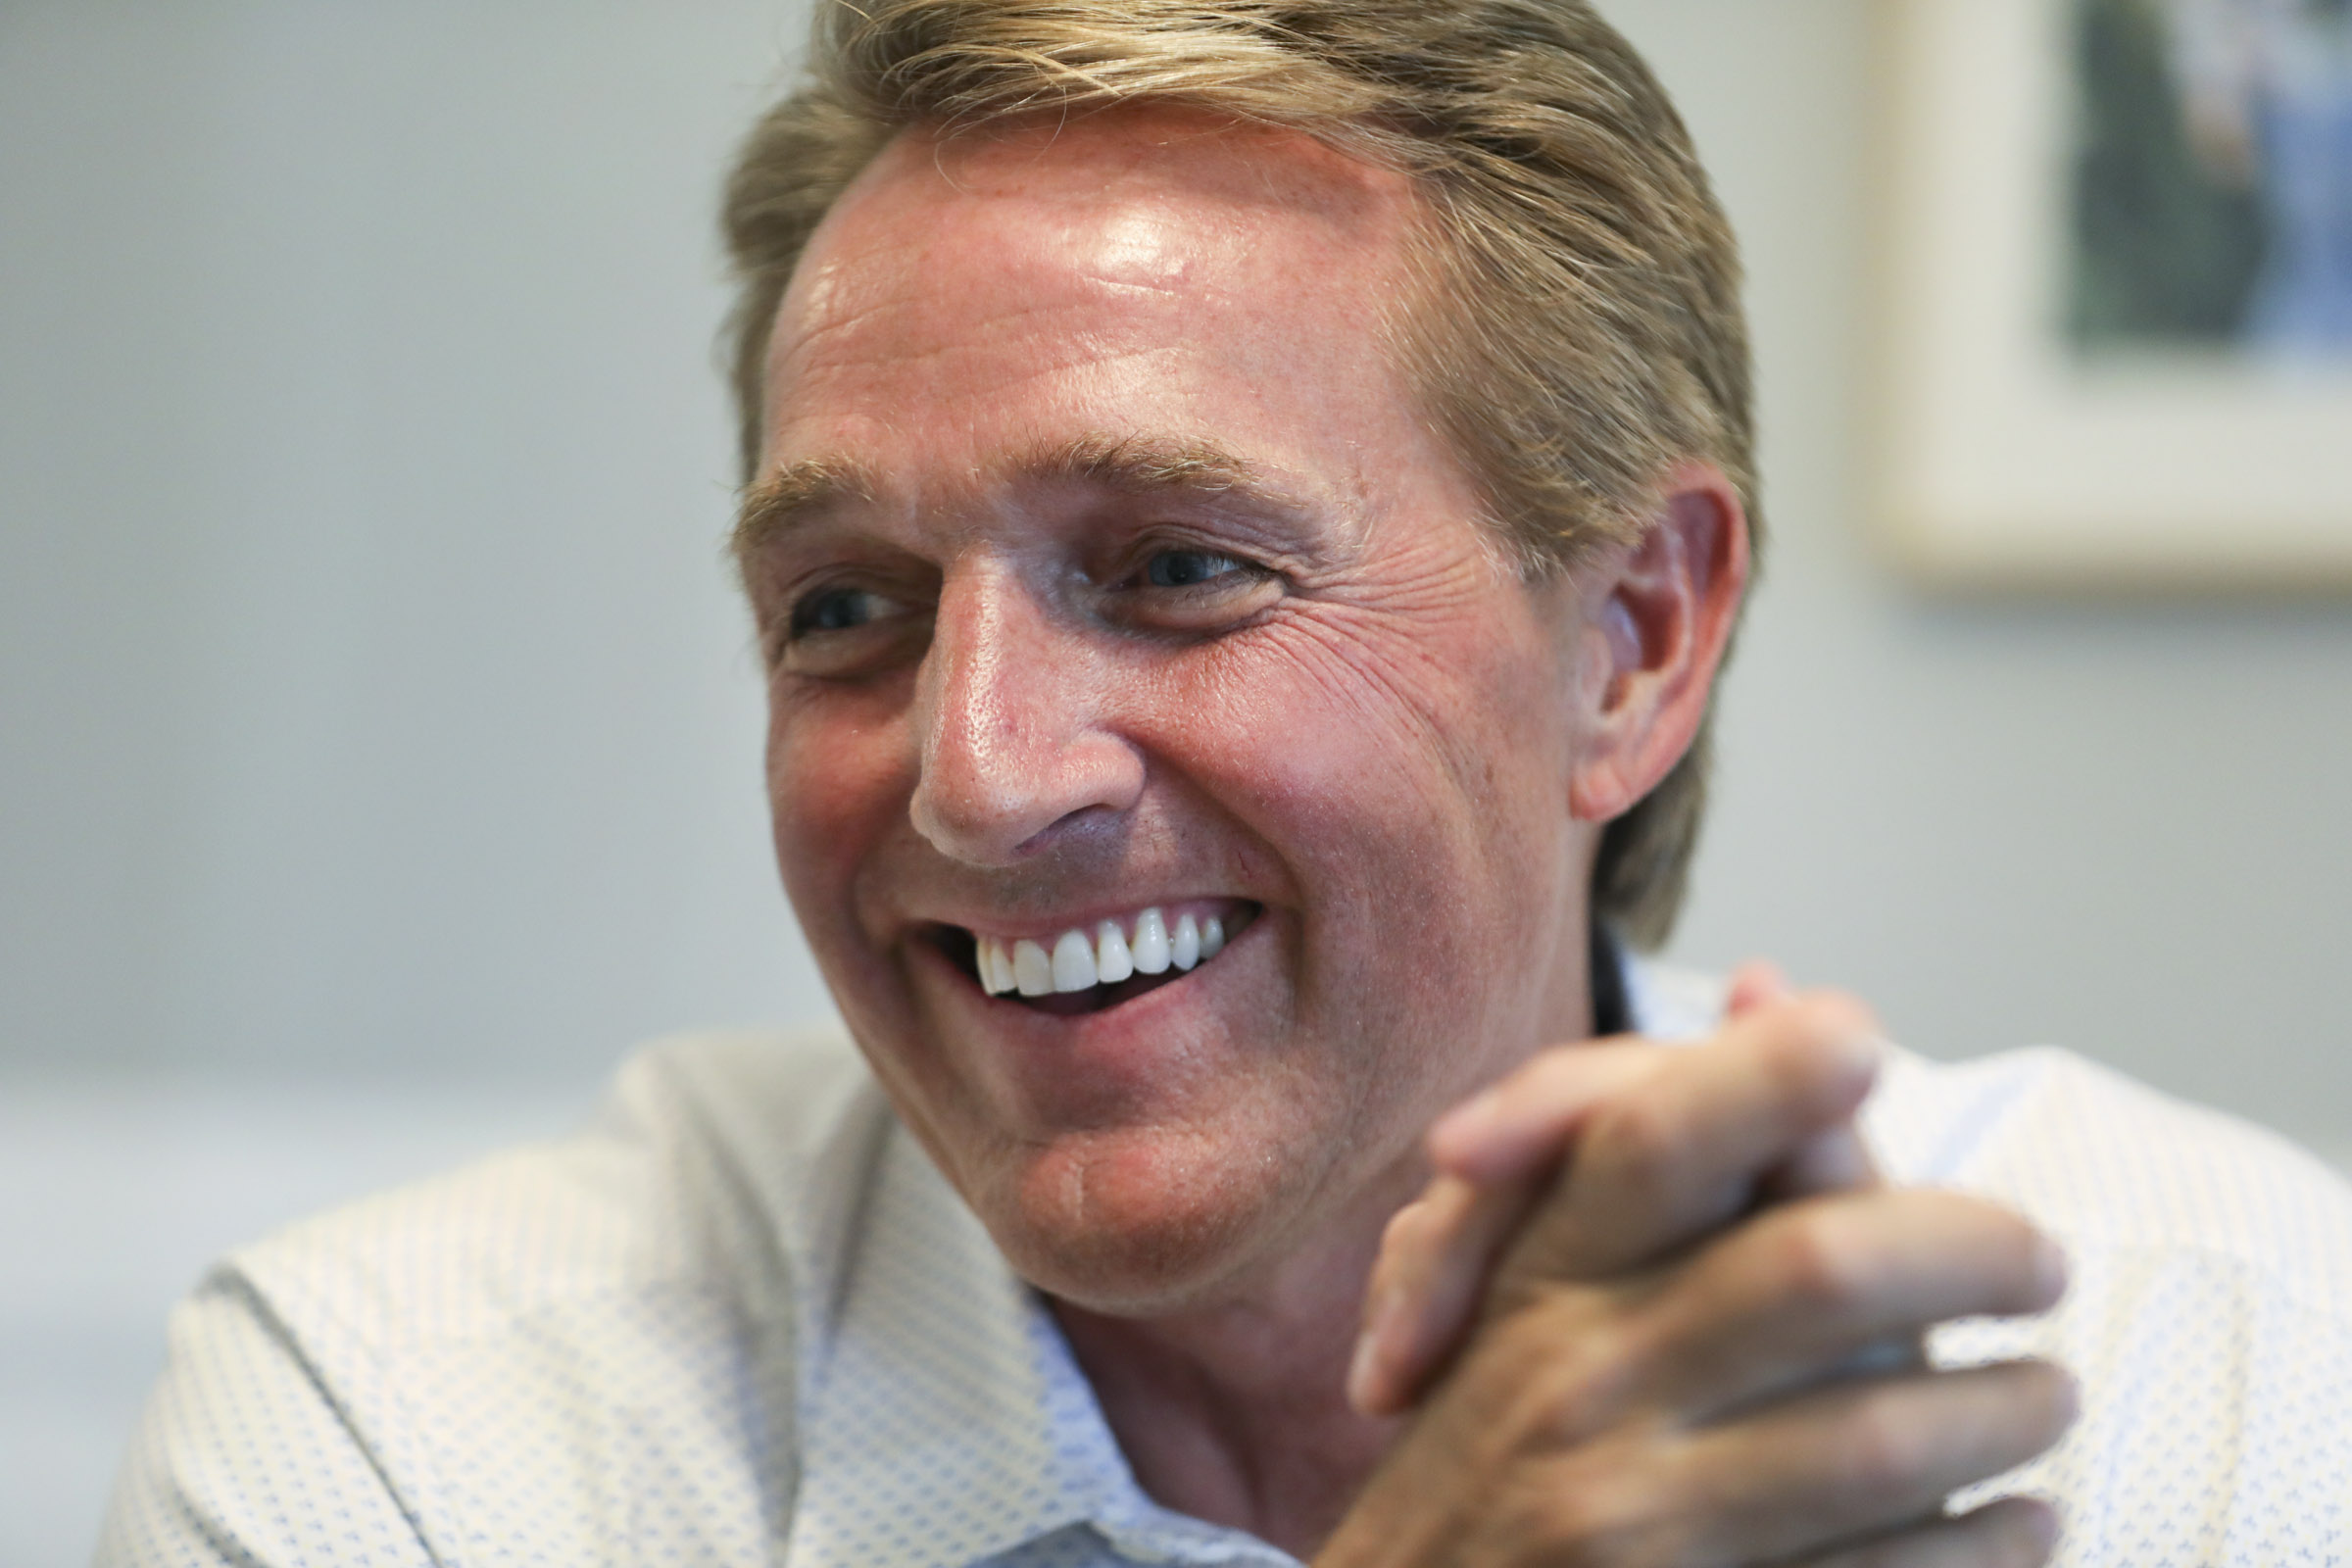 Former Sen. Jeff Flake talks about what he is doing a year after he stepped down from the Senate and how he plans to remain a voice for conservatism during an interview in Provo on Wednesday, July 31, 2019.